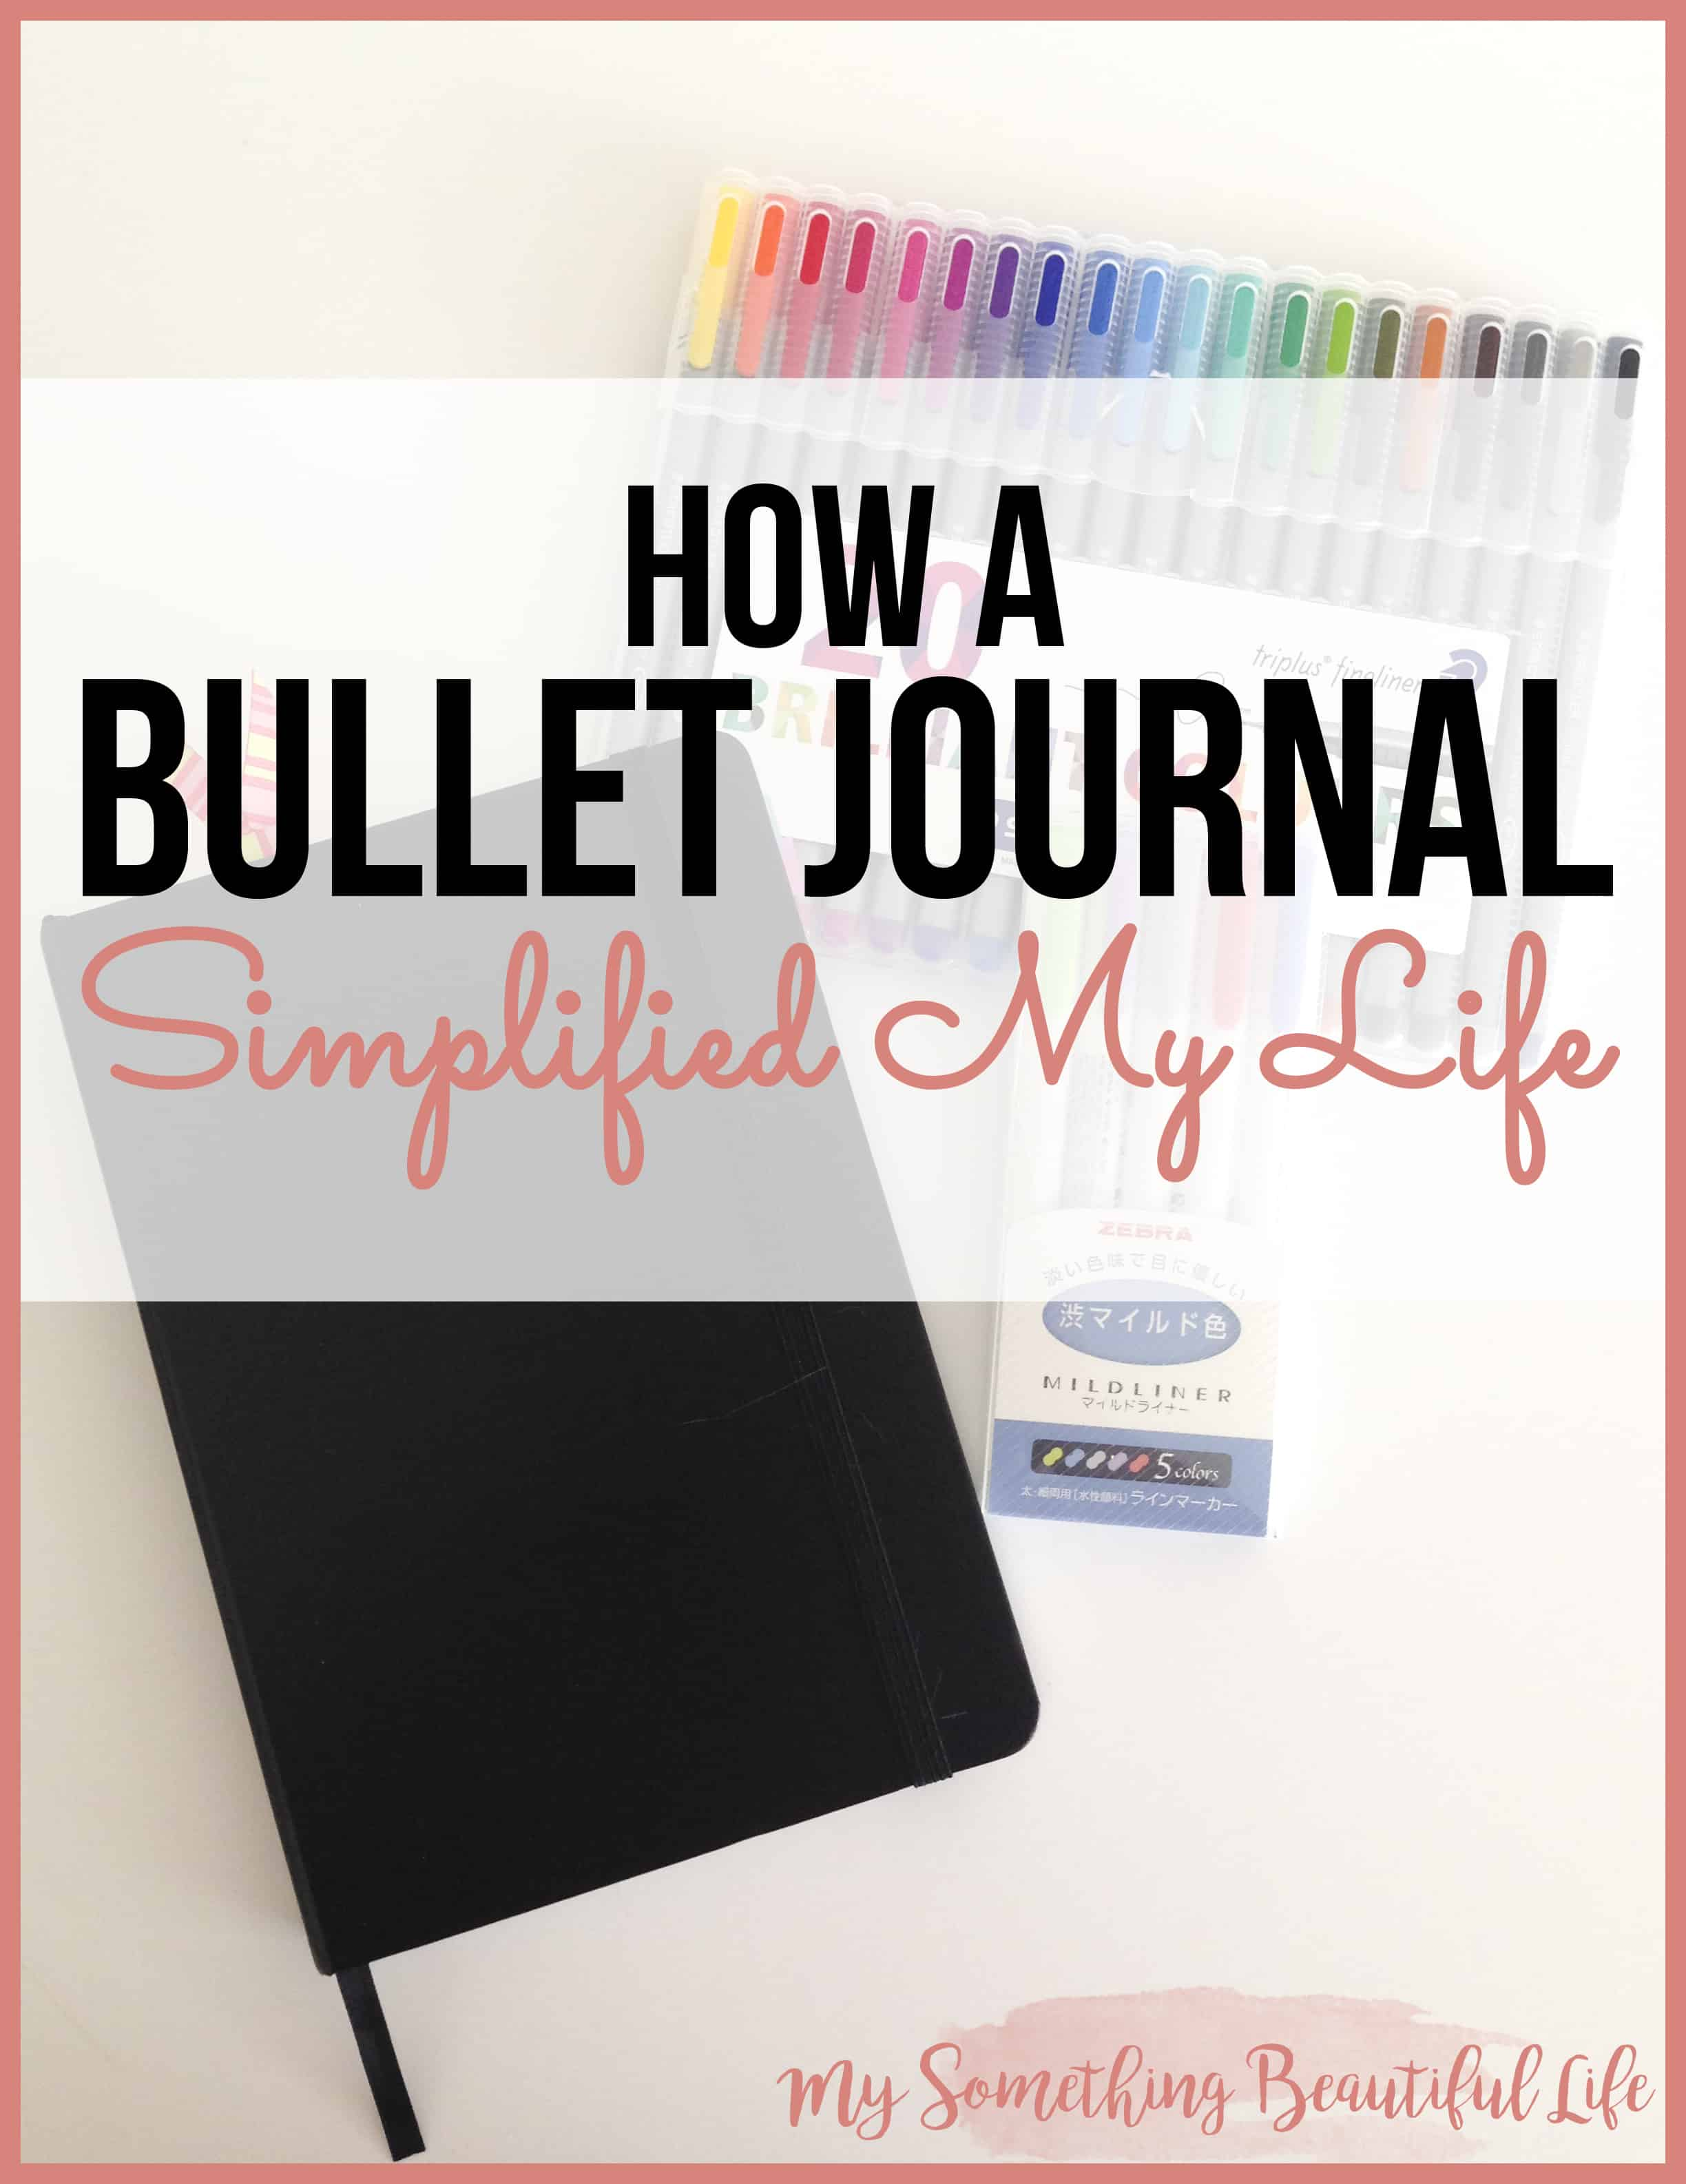 How a Bullet Journal Simplified My Life by My Something Beautiful Life